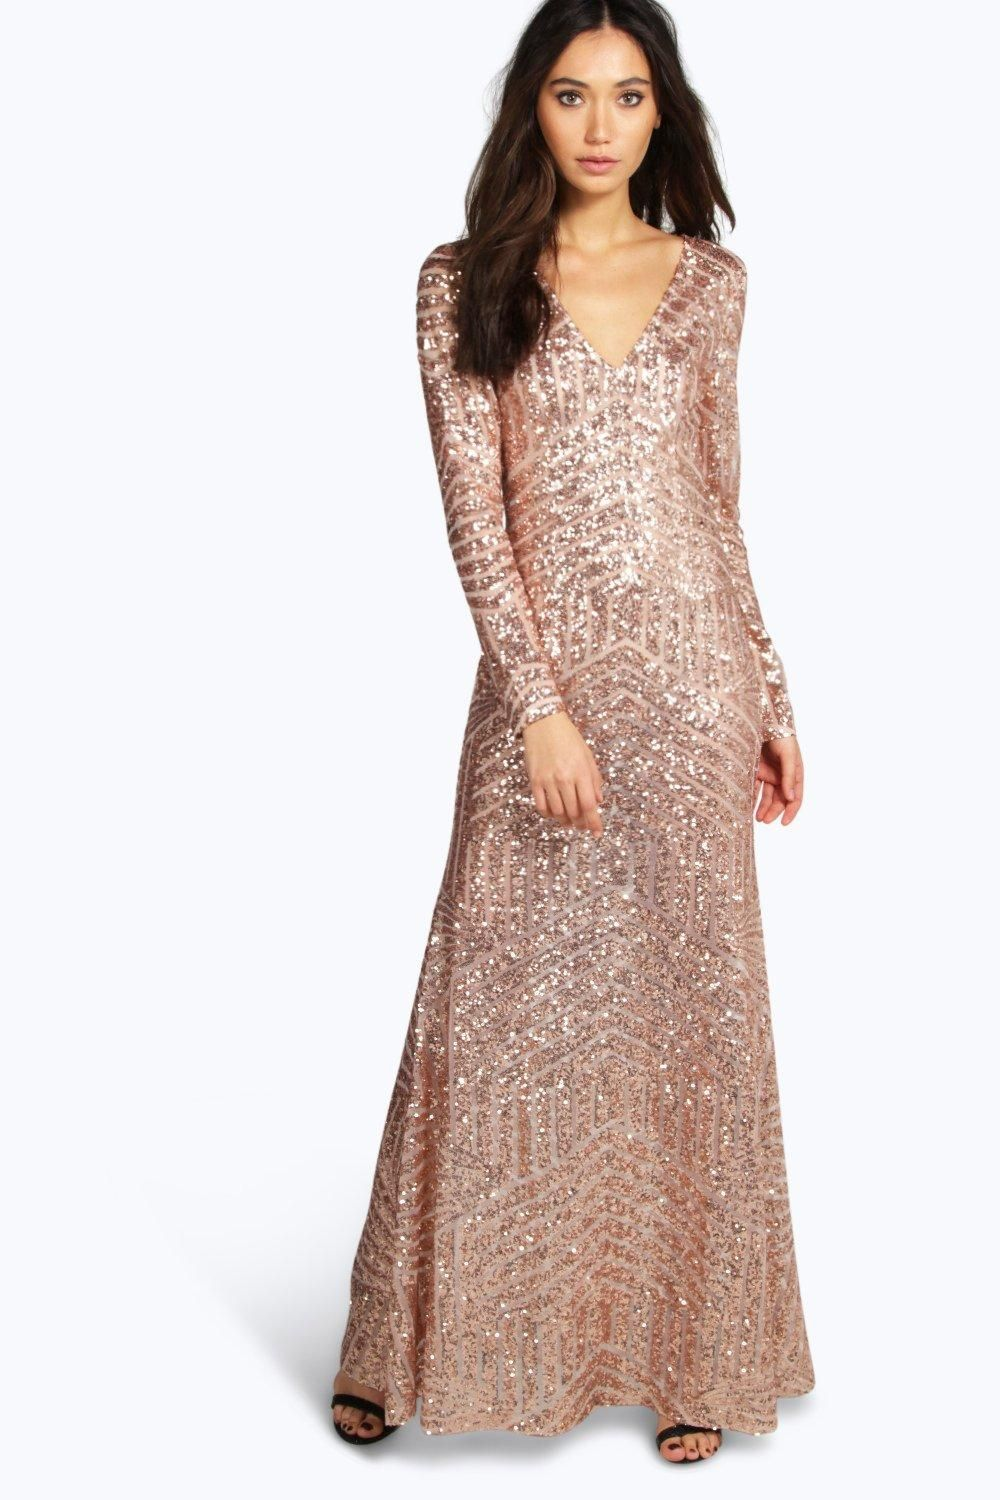 72d68e18f603c boohoo Boutique Mia Sequin Mesh Plunge Neck Maxi Dress - nude $70.00 AT  vintagedancer.com